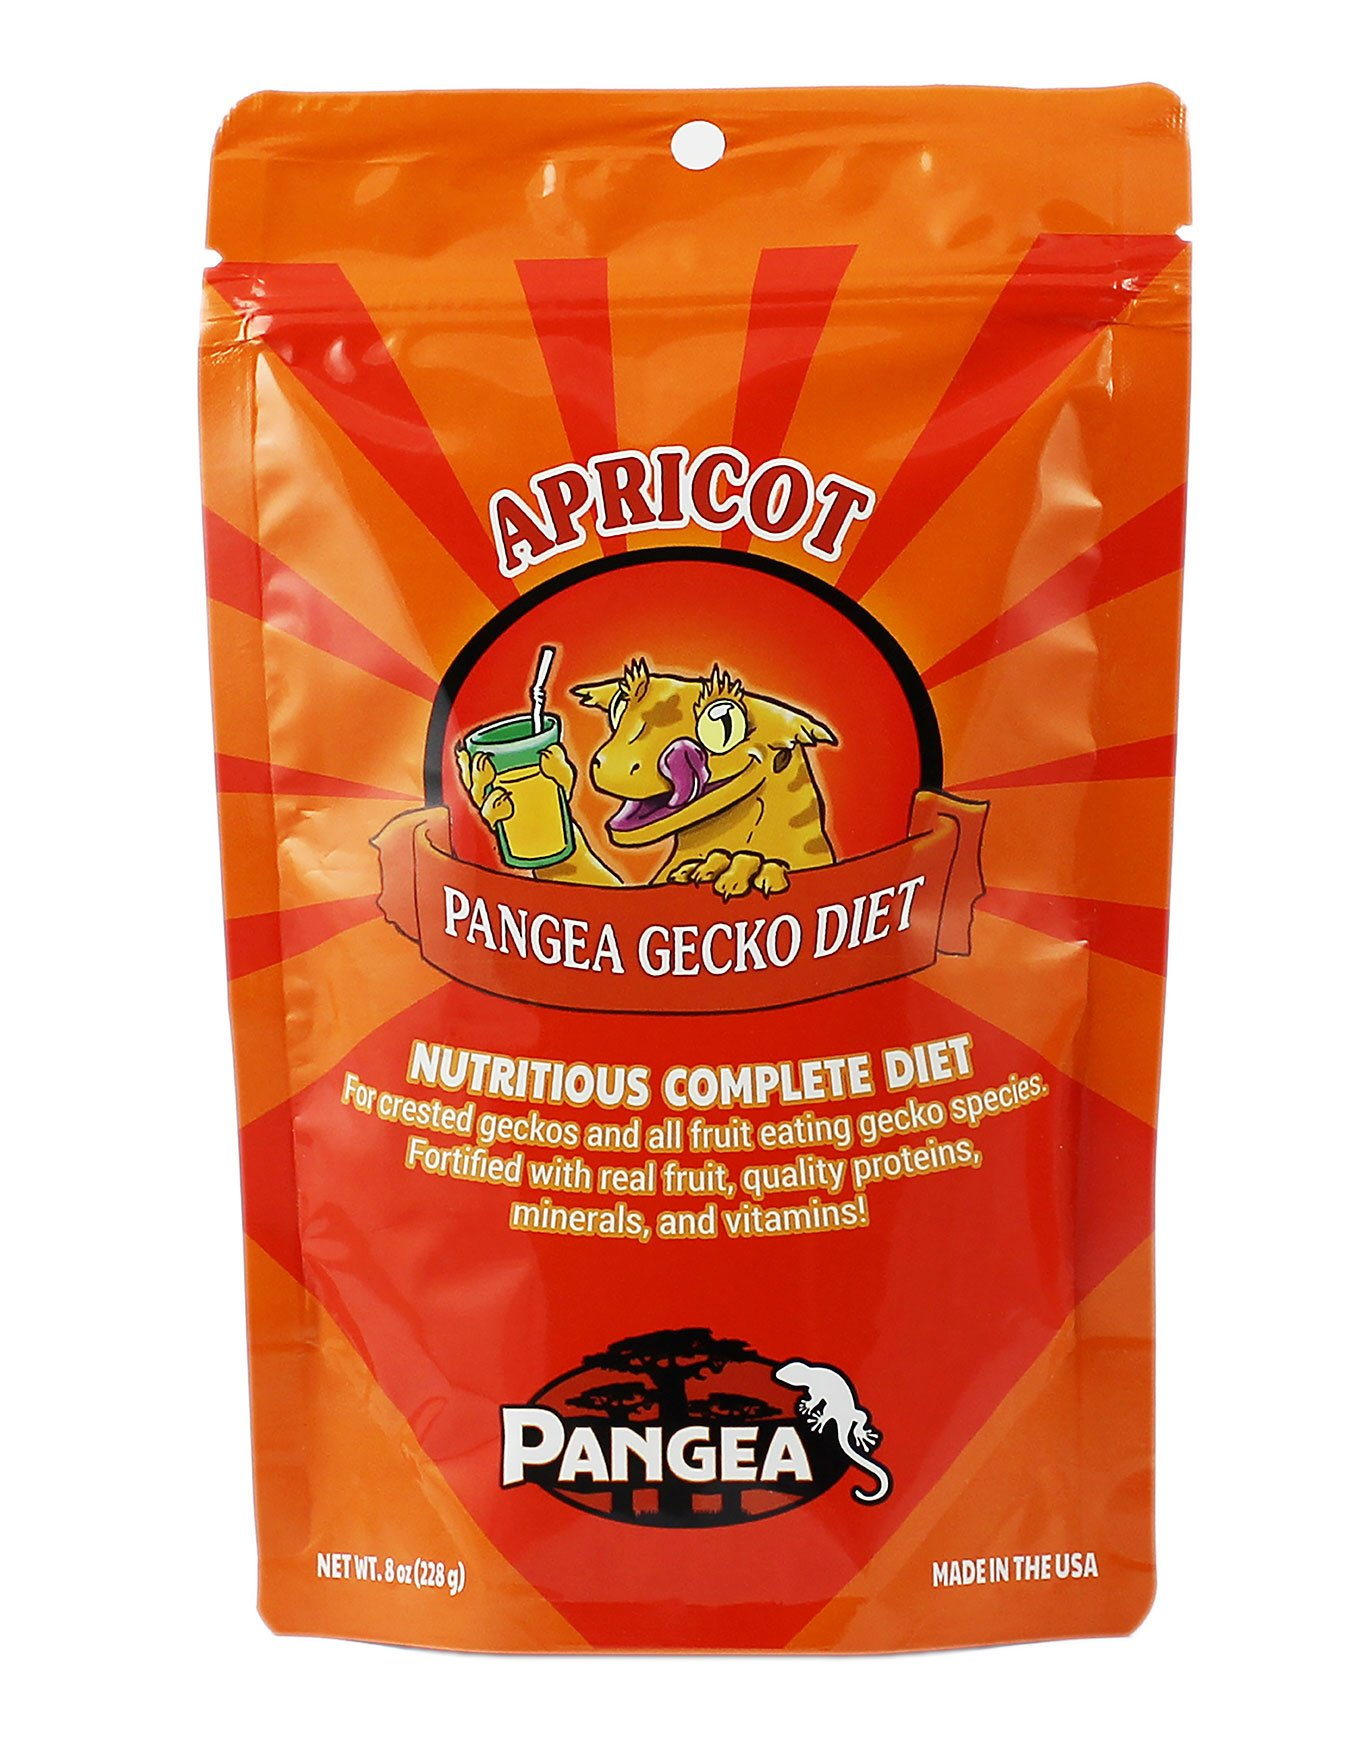 Pangea Fruit Mix Apricot Complete Crested Gecko Food 1 lb by Pangea